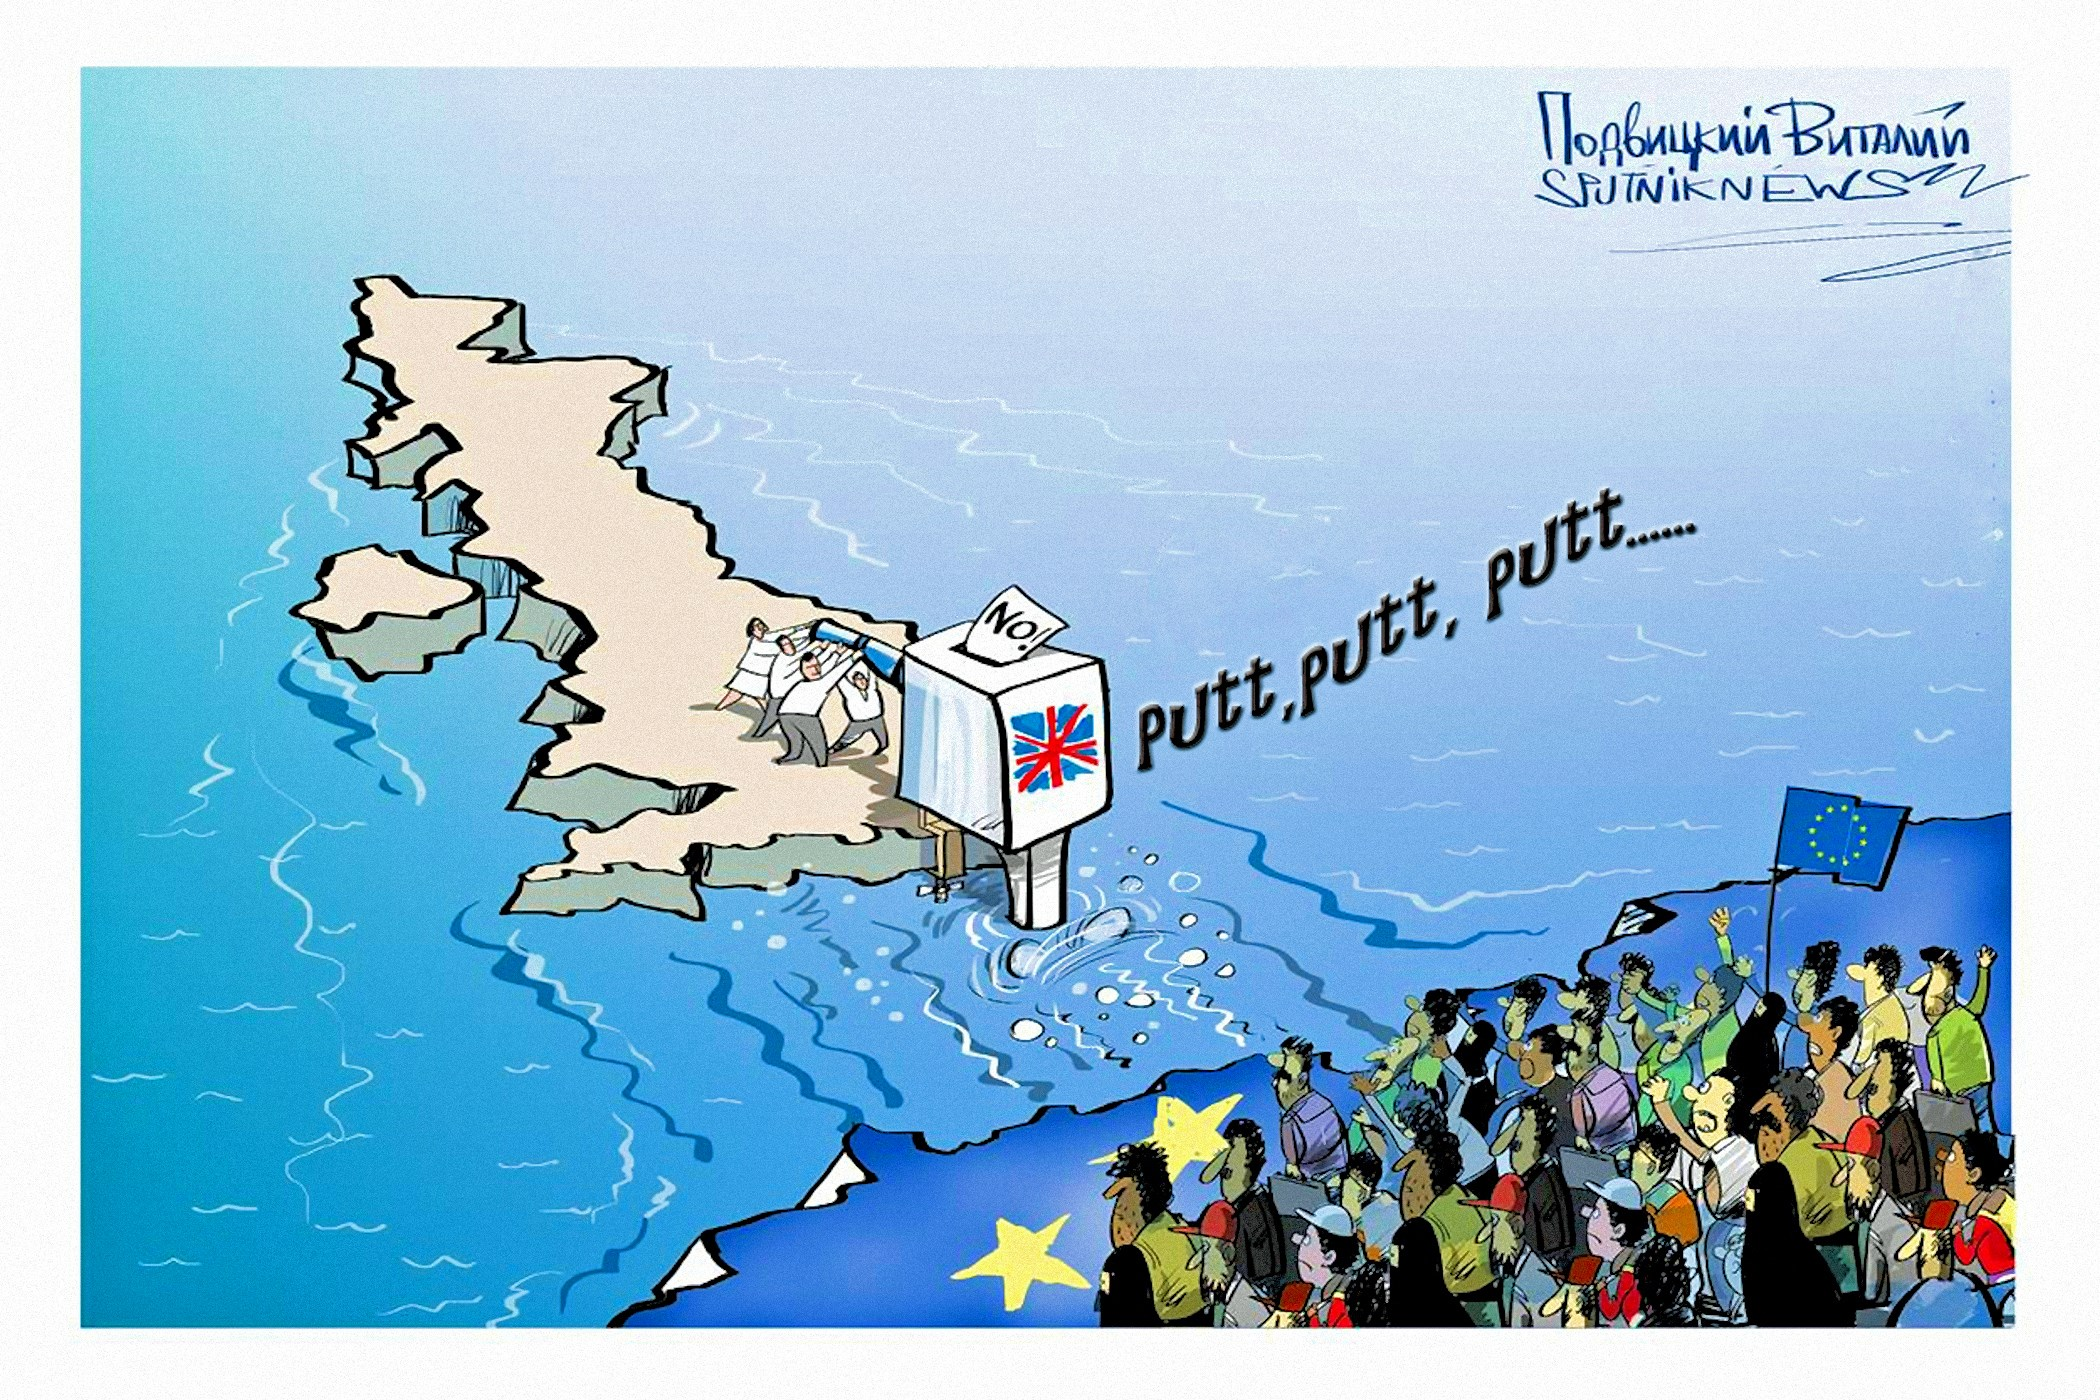 00 Vitaly Podvitsky. The Brexit Shock. 2016